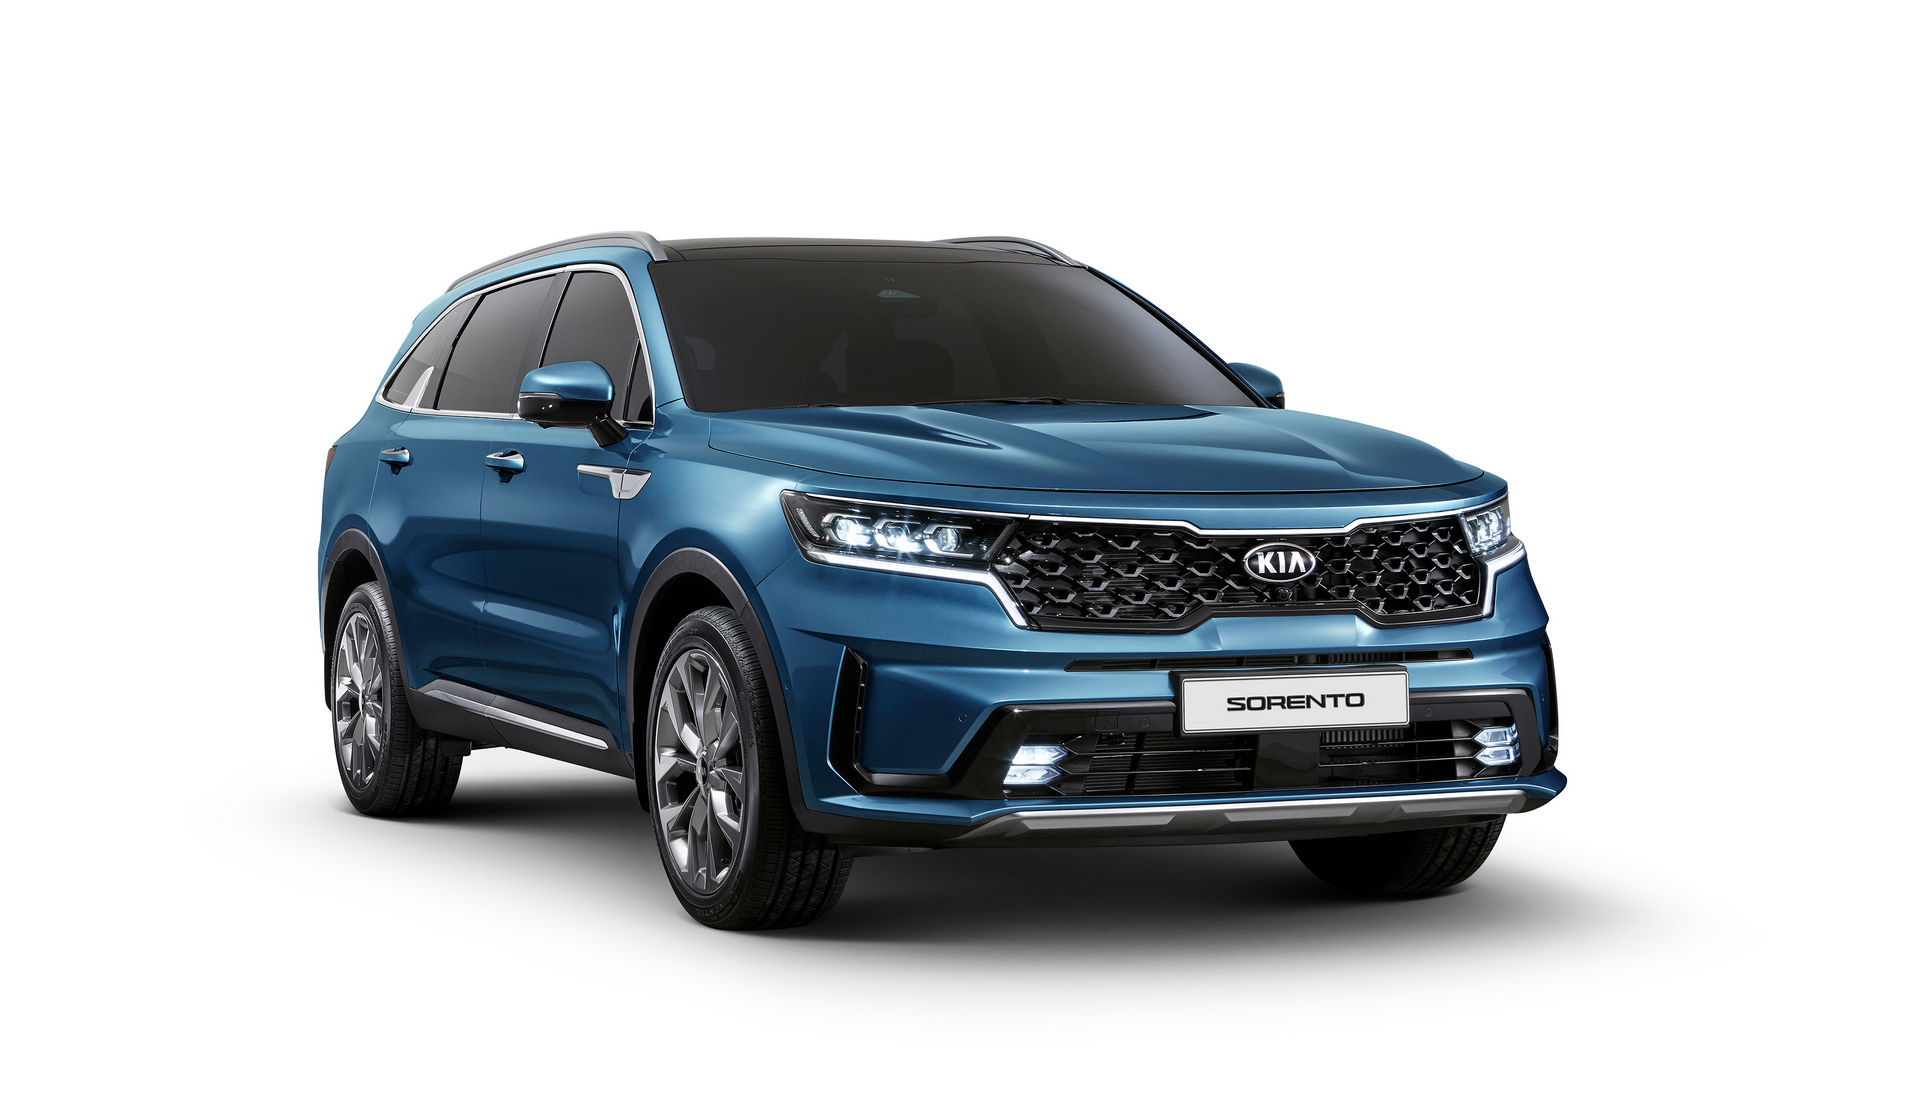 2021 Kia Sorento: Here Are The First Official Images And Details - 2022 Kia Forte Engine 2.0 L 4 Cylinder Cargo Space, Rumor